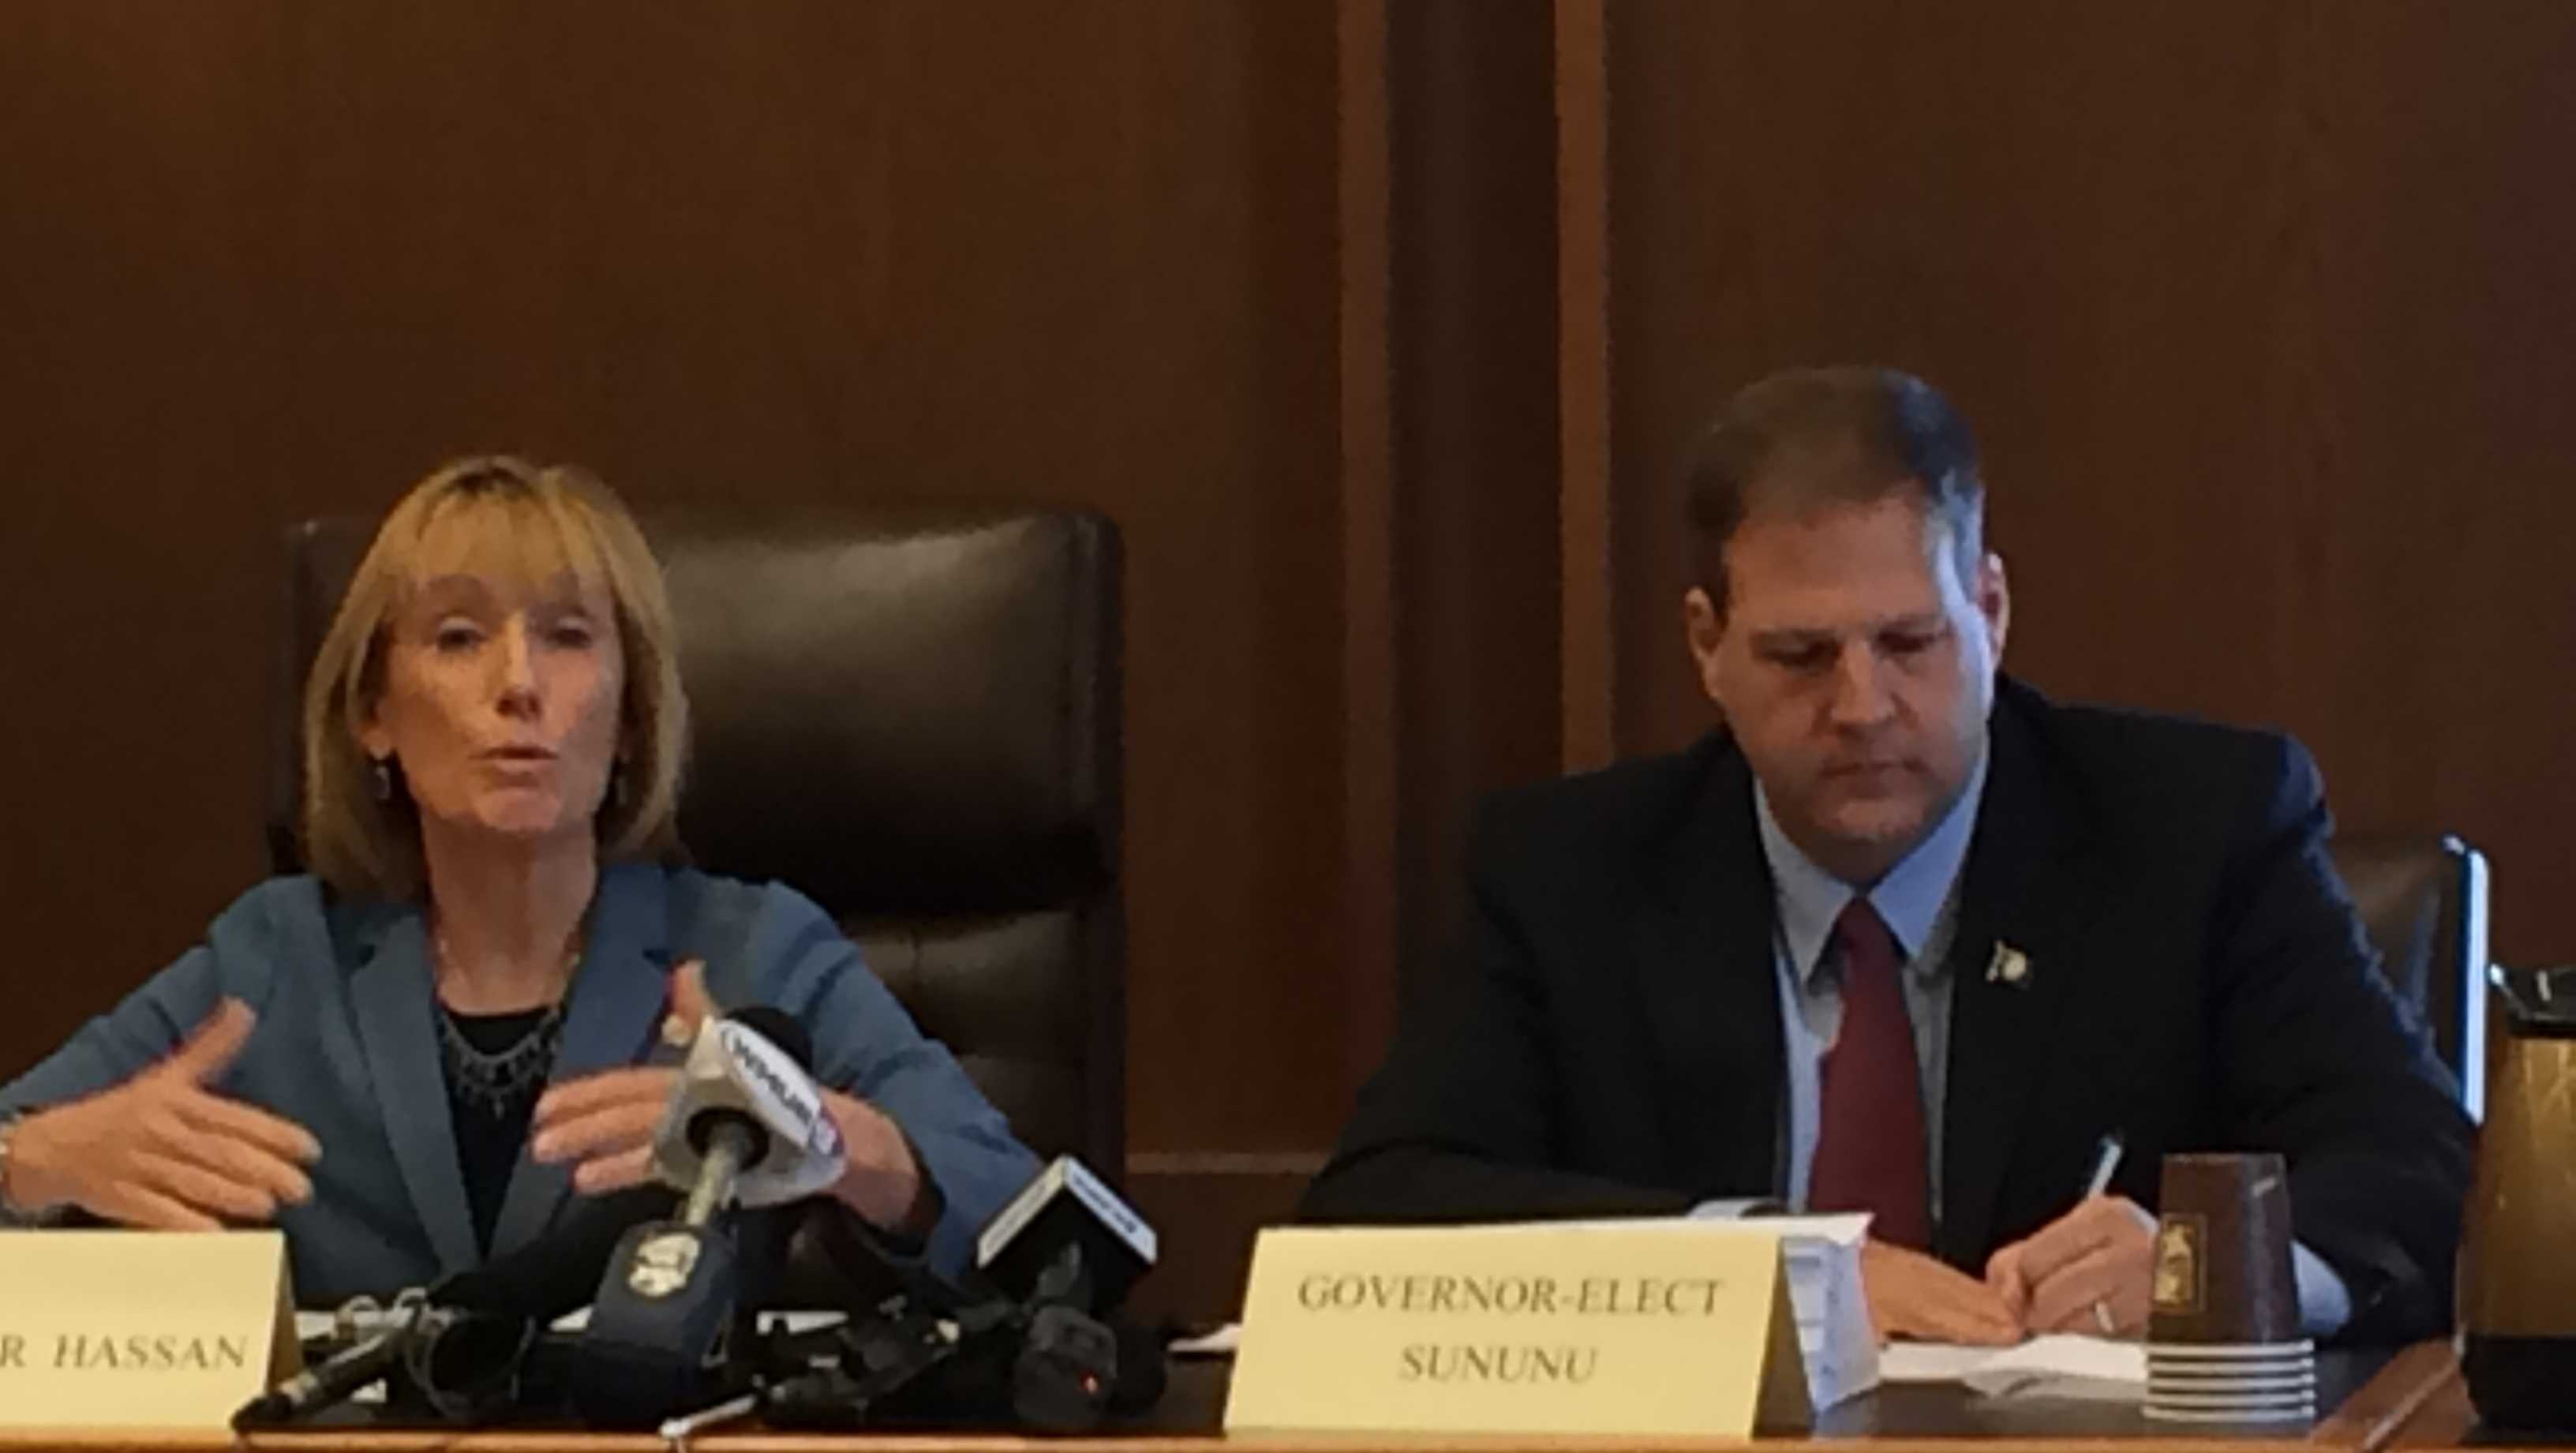 Sen. Maggie Hassan and Gov. Chris Sununu, seen here prior to assuming their respective offices, have opposite views on the fitness of Betsy DeVos to serve as U.S. Secretary of Education.